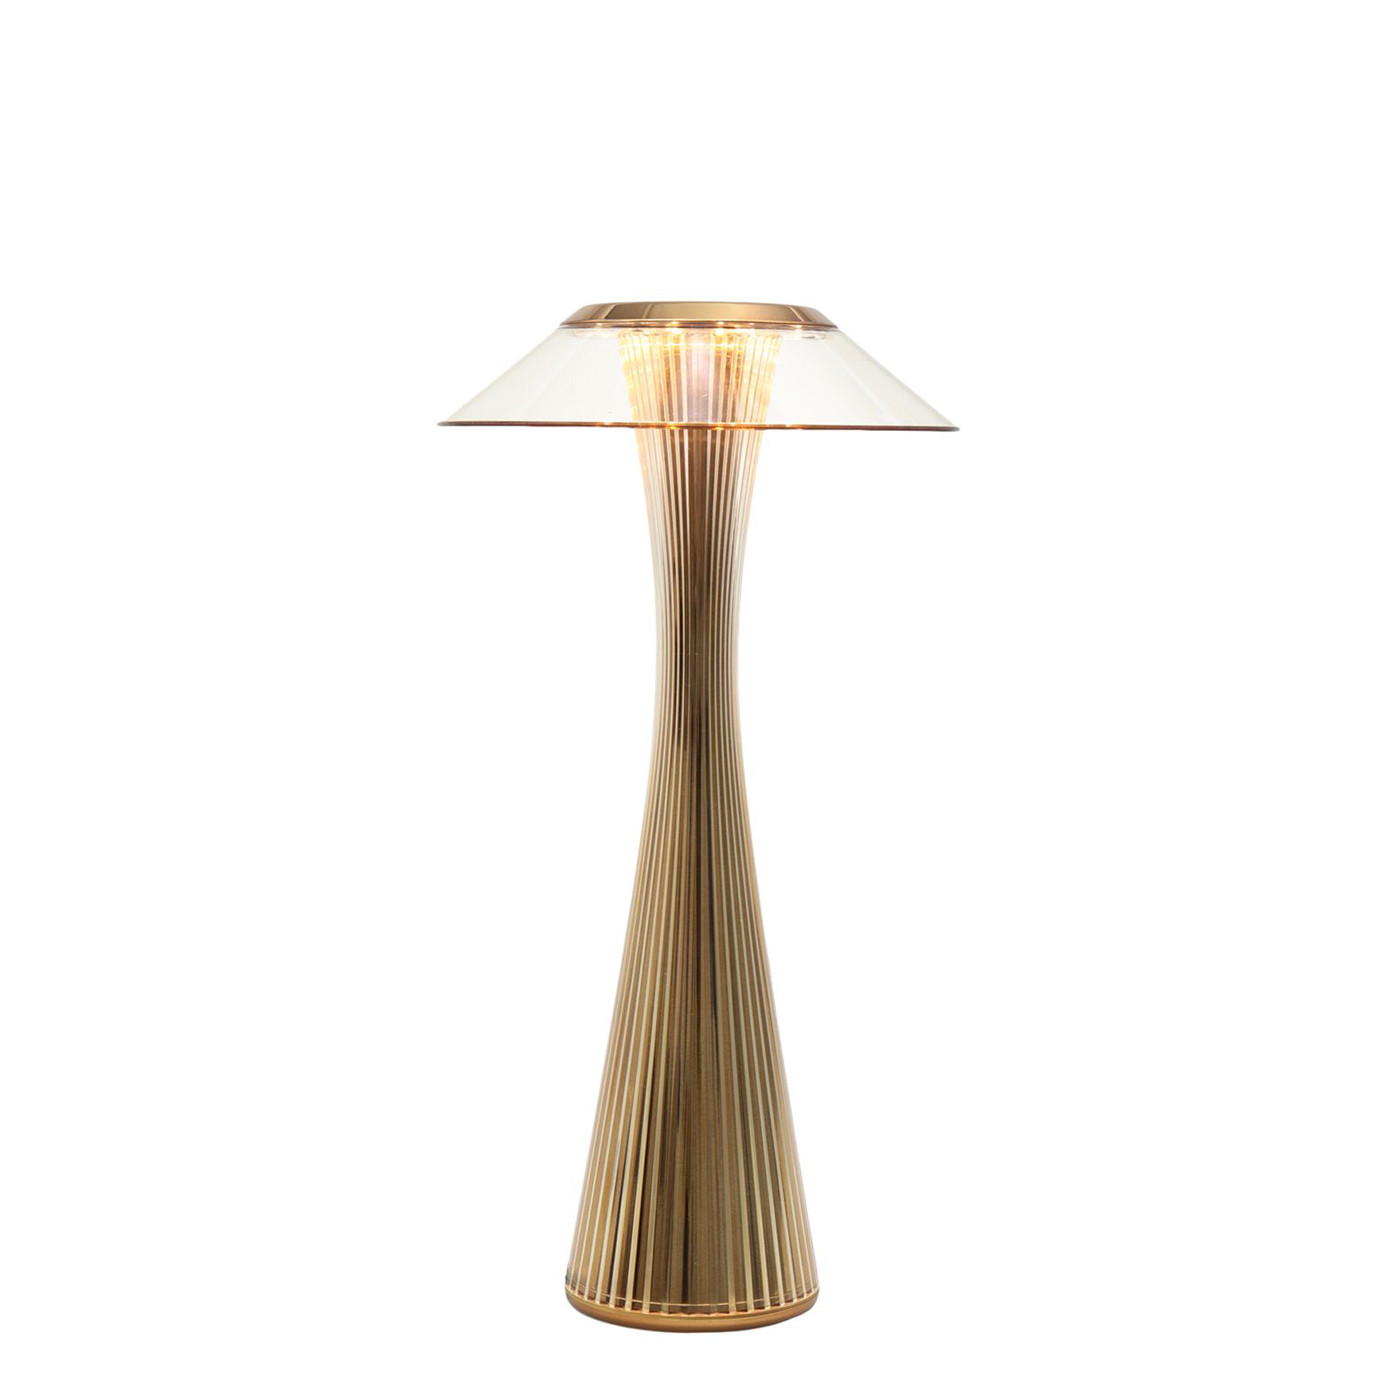 Most Iconic Table Lamps